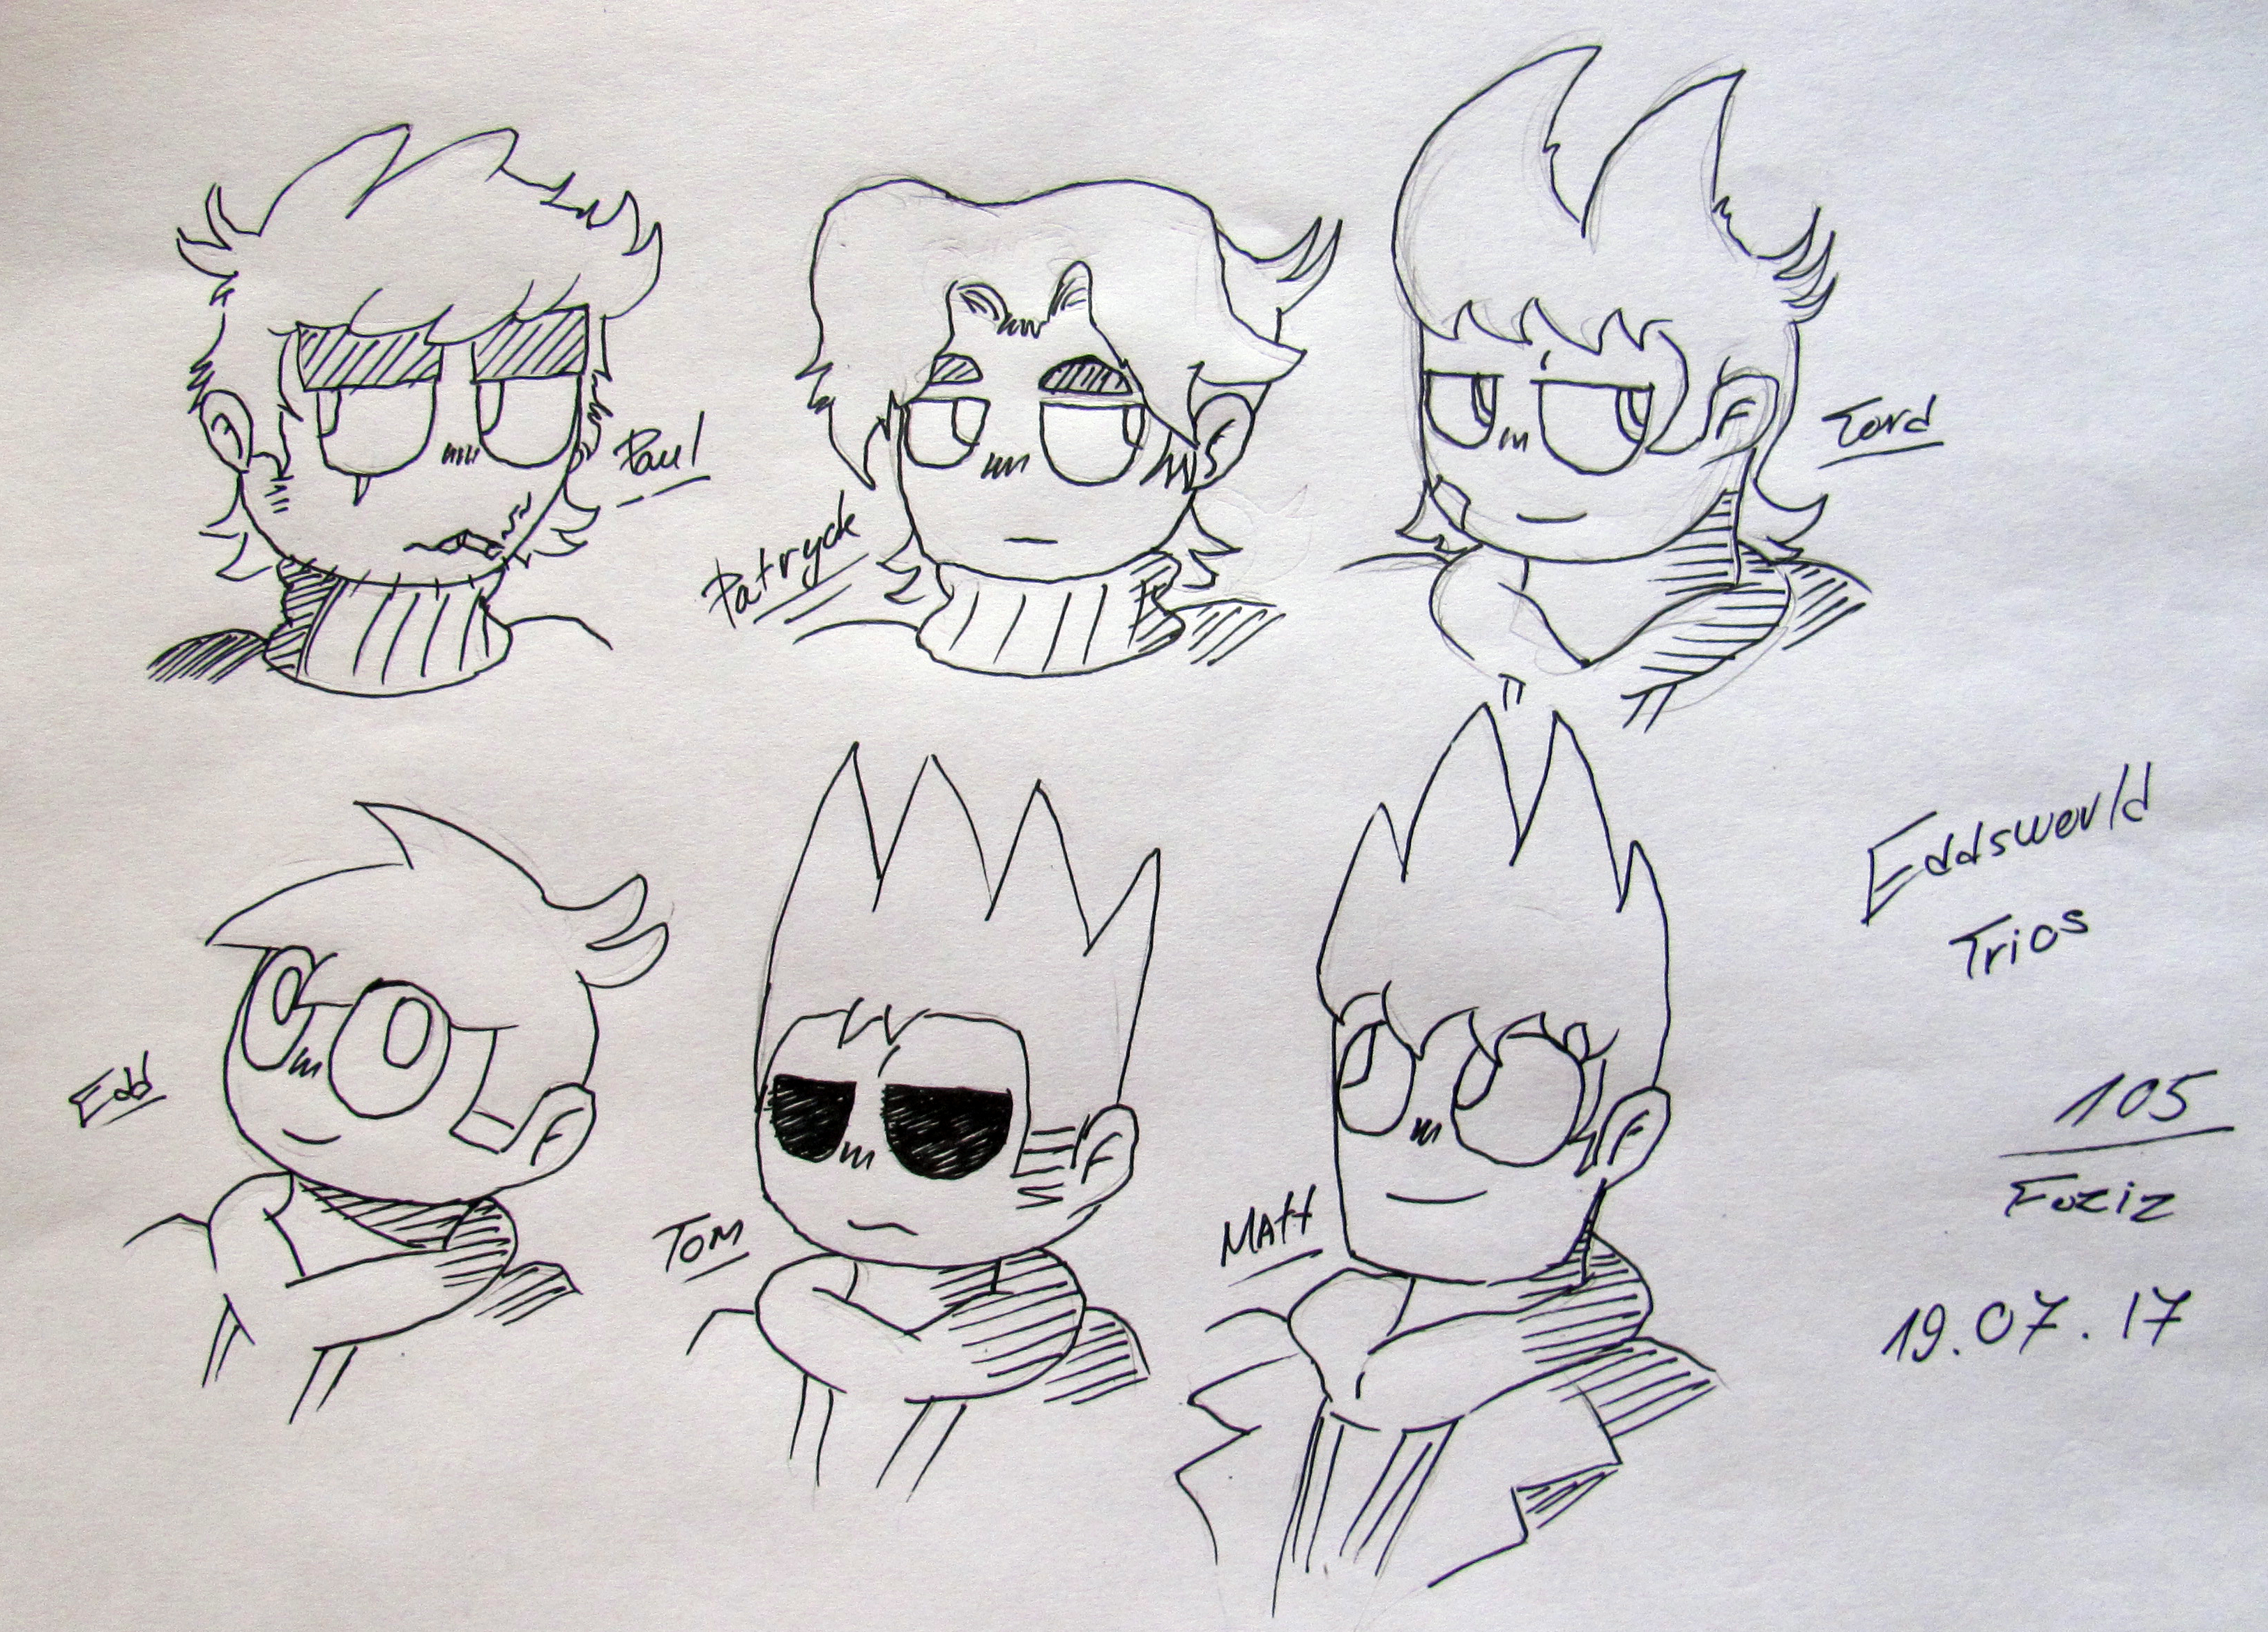 Eddsworld Trios by Foziz105